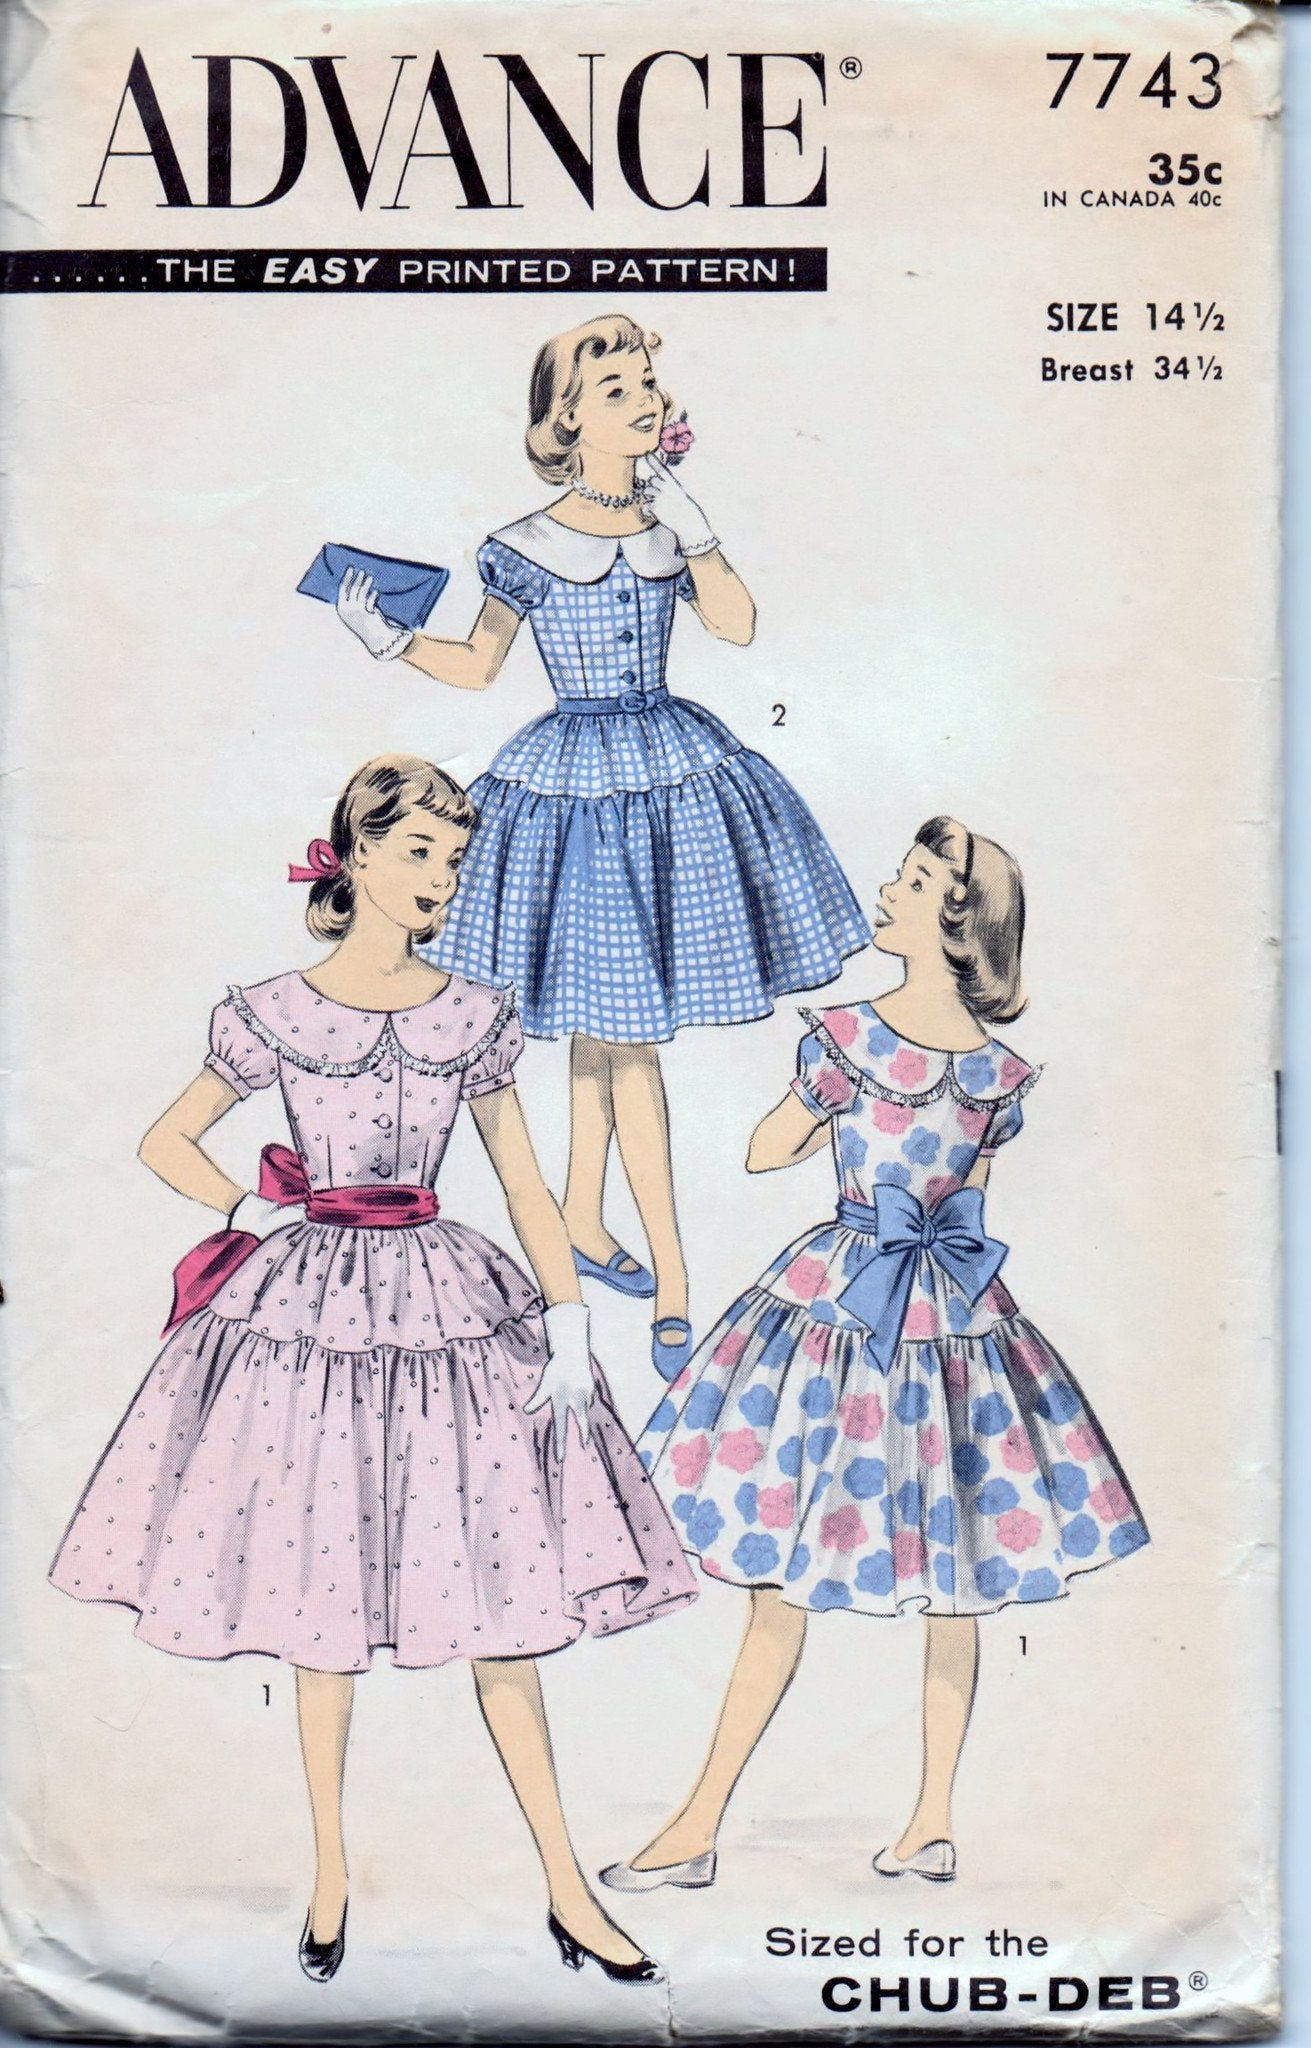 Advance 7743 Young Girls Dress Puff Sleeves Round Collar Vintage 50's Sewing Pattern Chub Deb - VintageStitching - Vintage Sewing Patterns